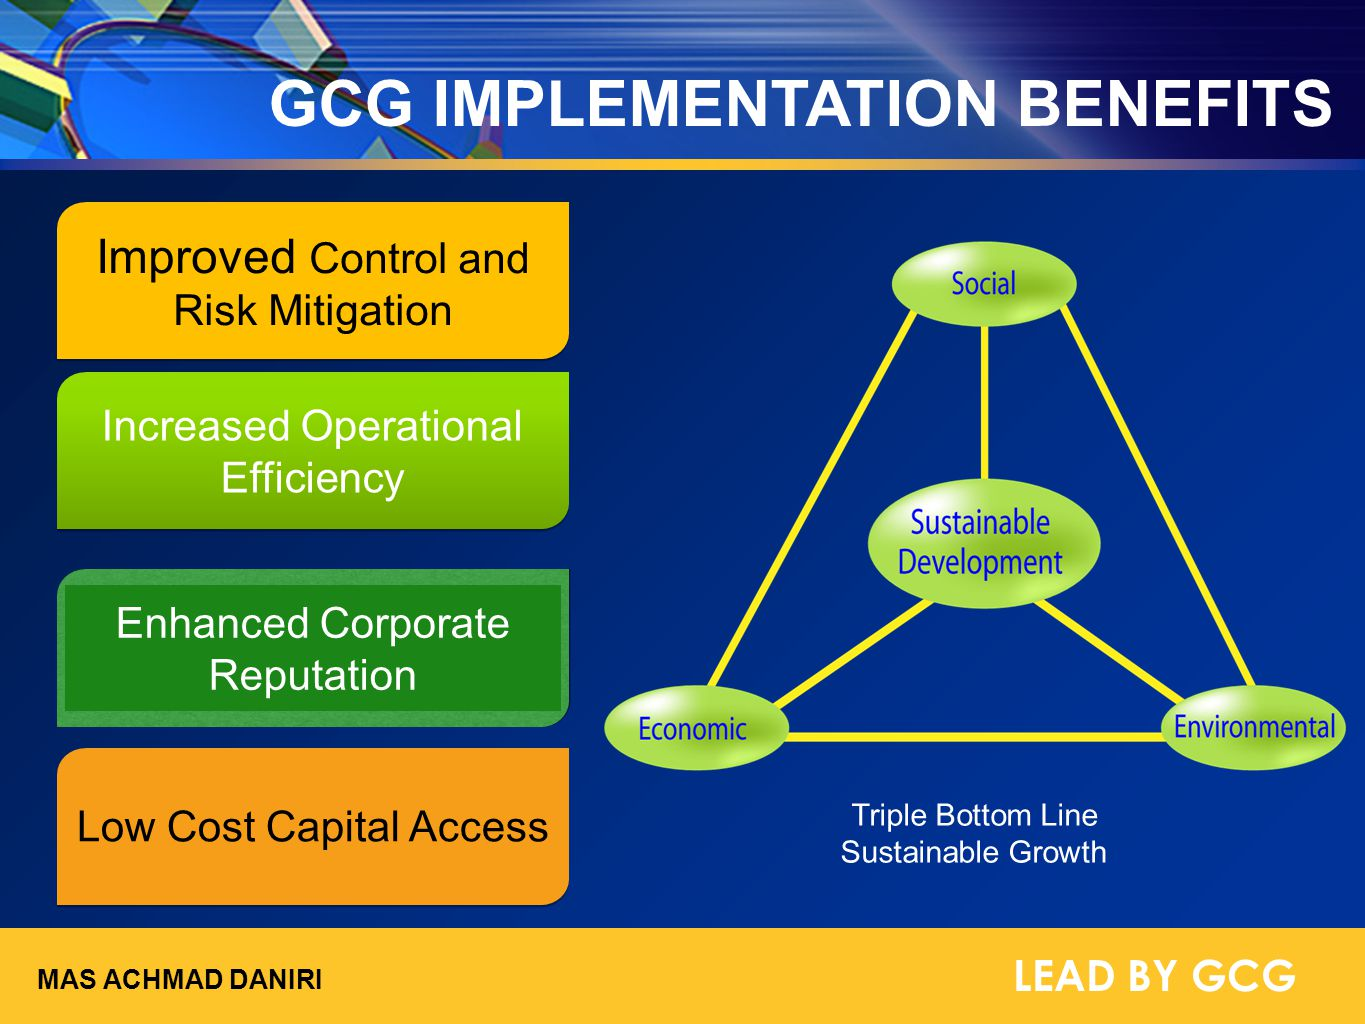 GCG IMPLEMENTATION BENEFITS Improved Control and Risk Mitigation Low Cost Capital Access Increased Operational Efficiency Enhanced Corporate Reputatio